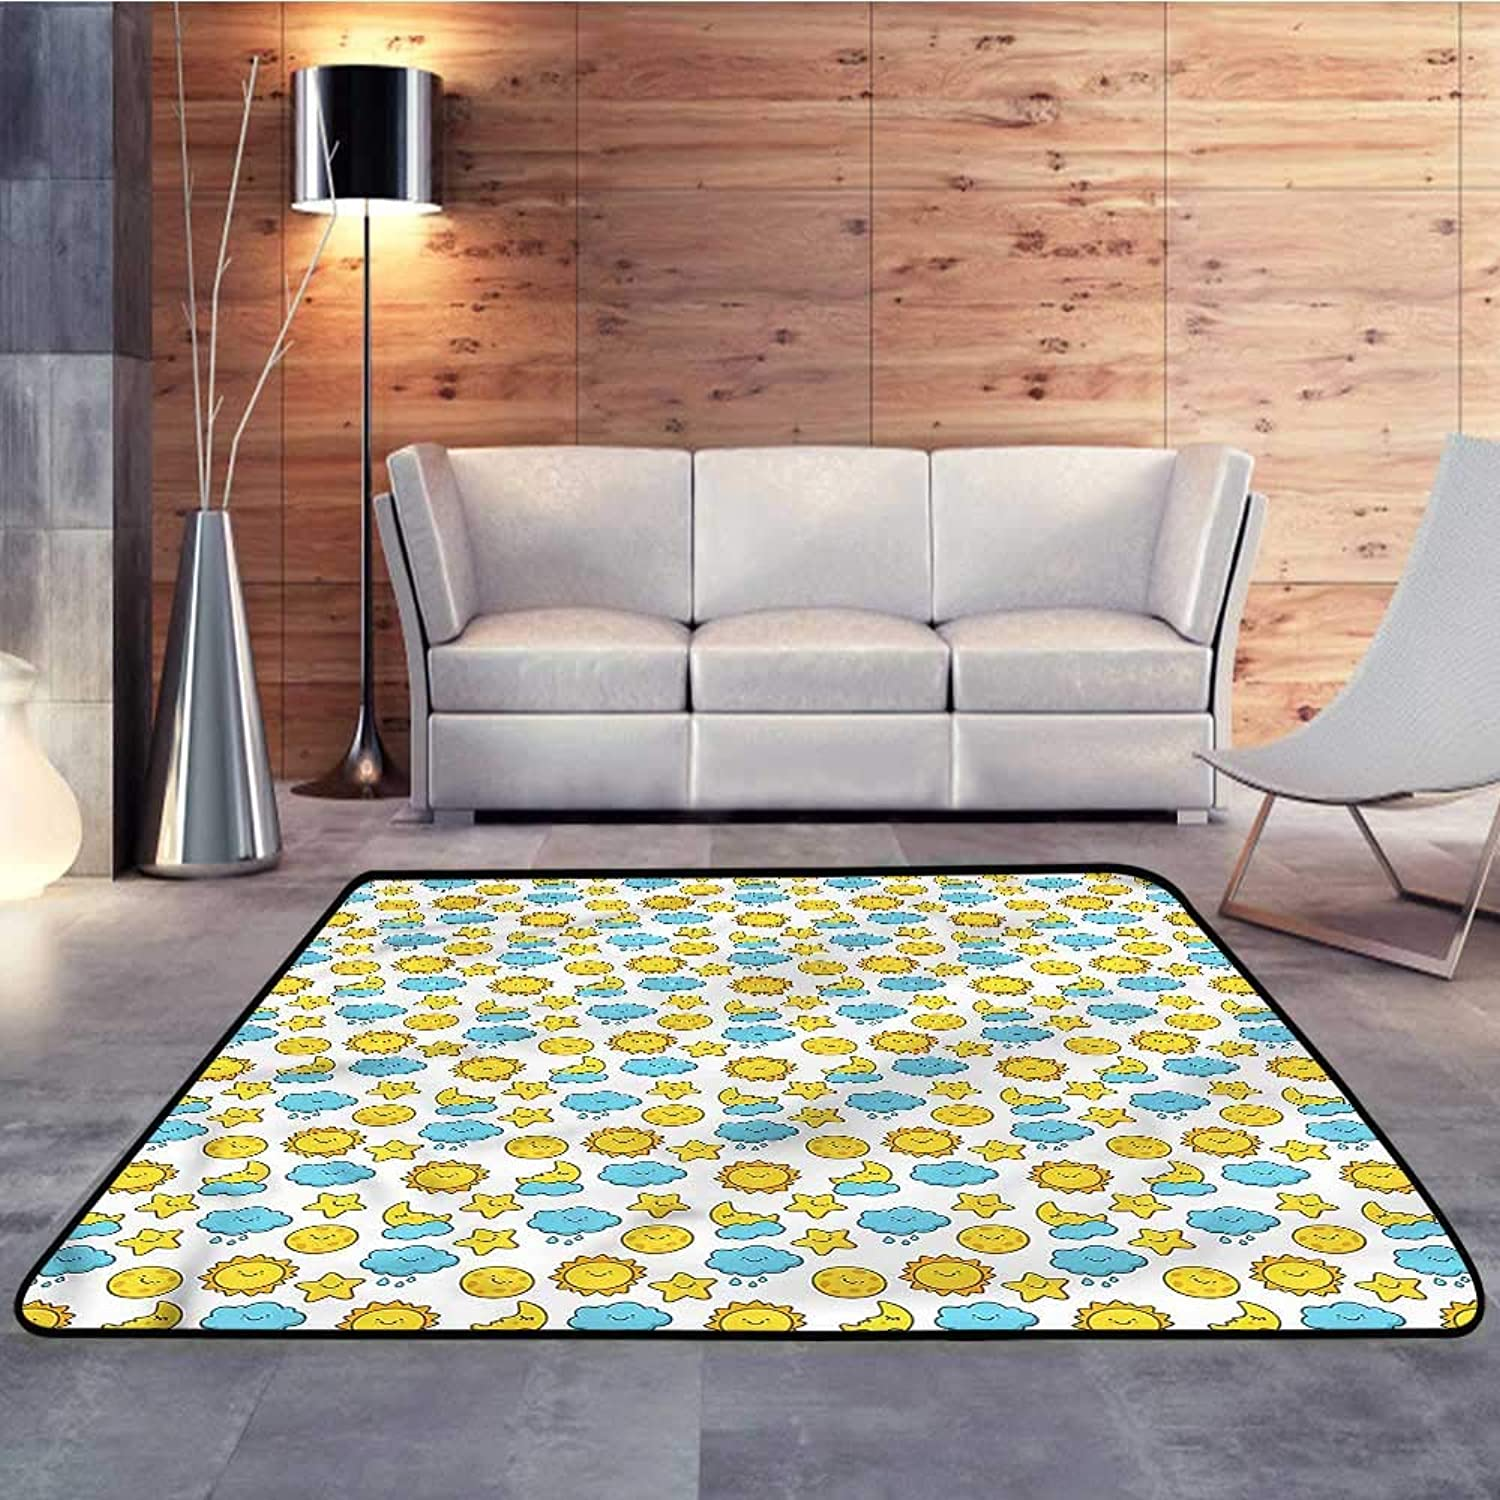 Kids rugsBaby,Day and Night Cycle FunW 47  x L59 Slip-Resistant Washable Entrance Doormat